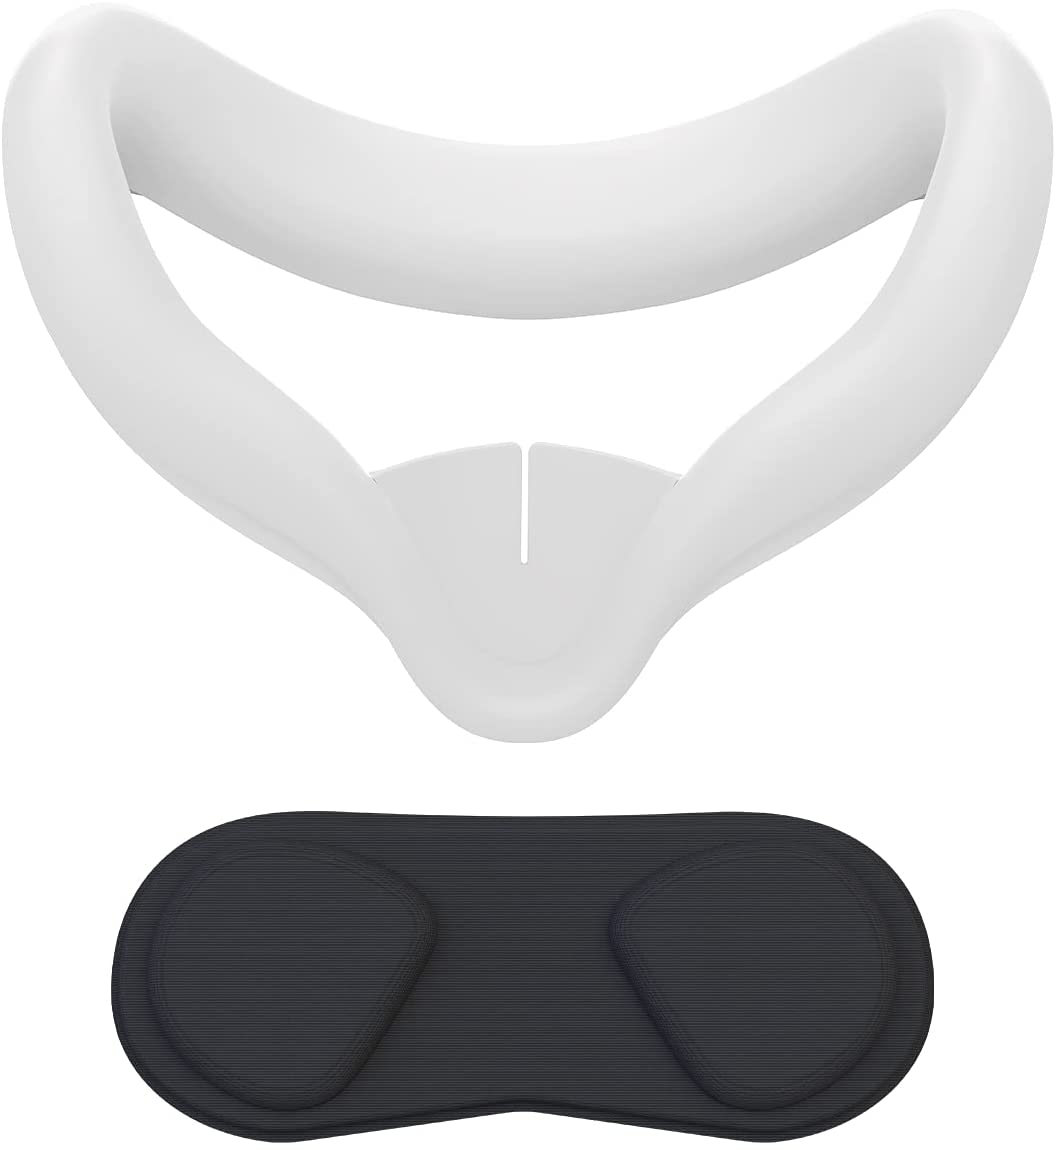 VR Face Cover and Lens Cover for Oculus Quest 2, Sweatproof Silicone Face Pad Mask & Face Cushion for Oculus Quest 2 VR Headset (Gray)